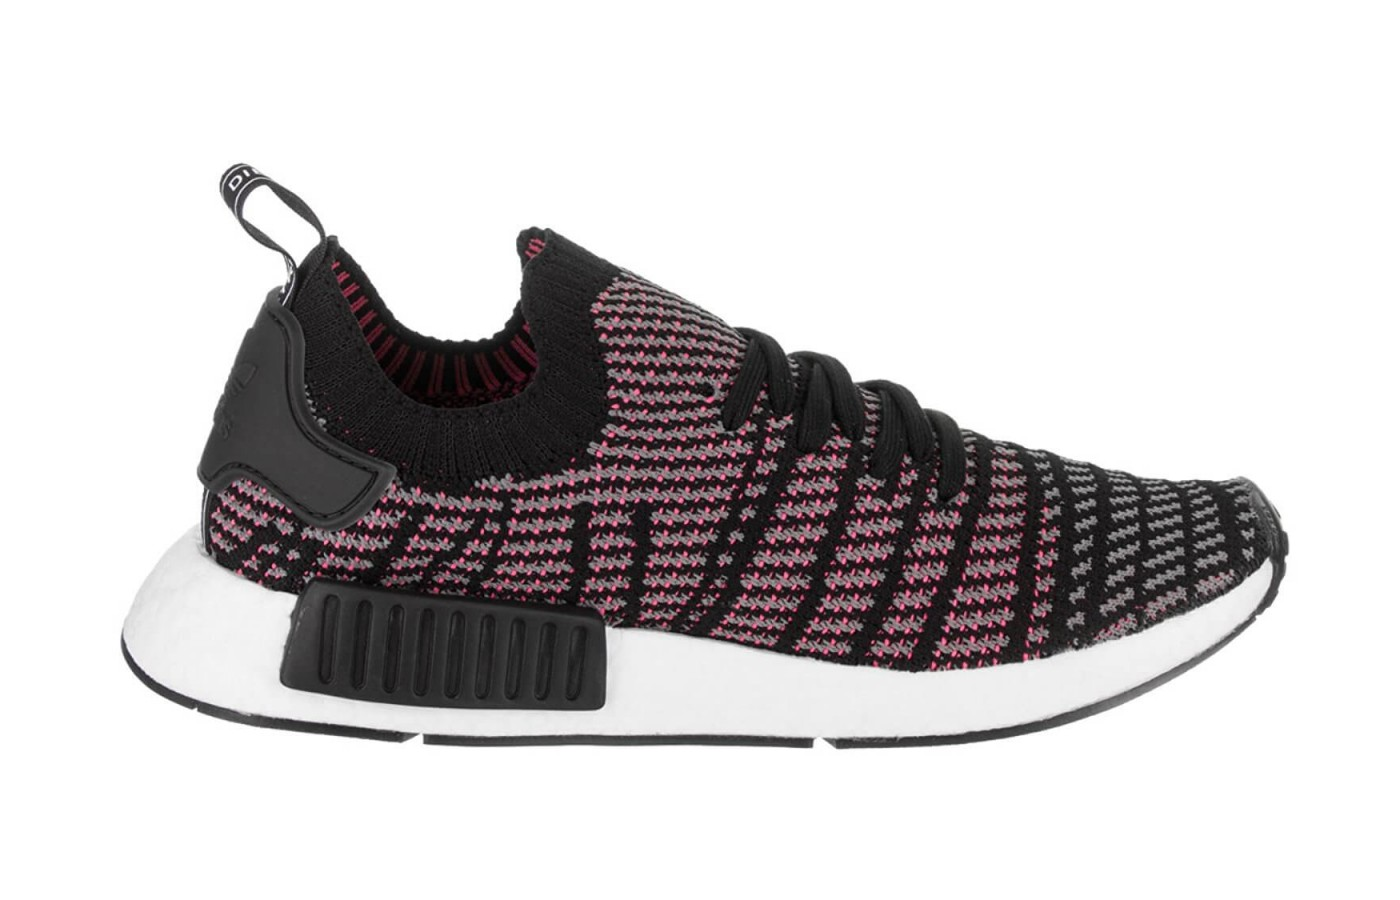 2fe731cb7 ... The Adidas NMD R1 Stlt Primeknit features a Boost midsole ...